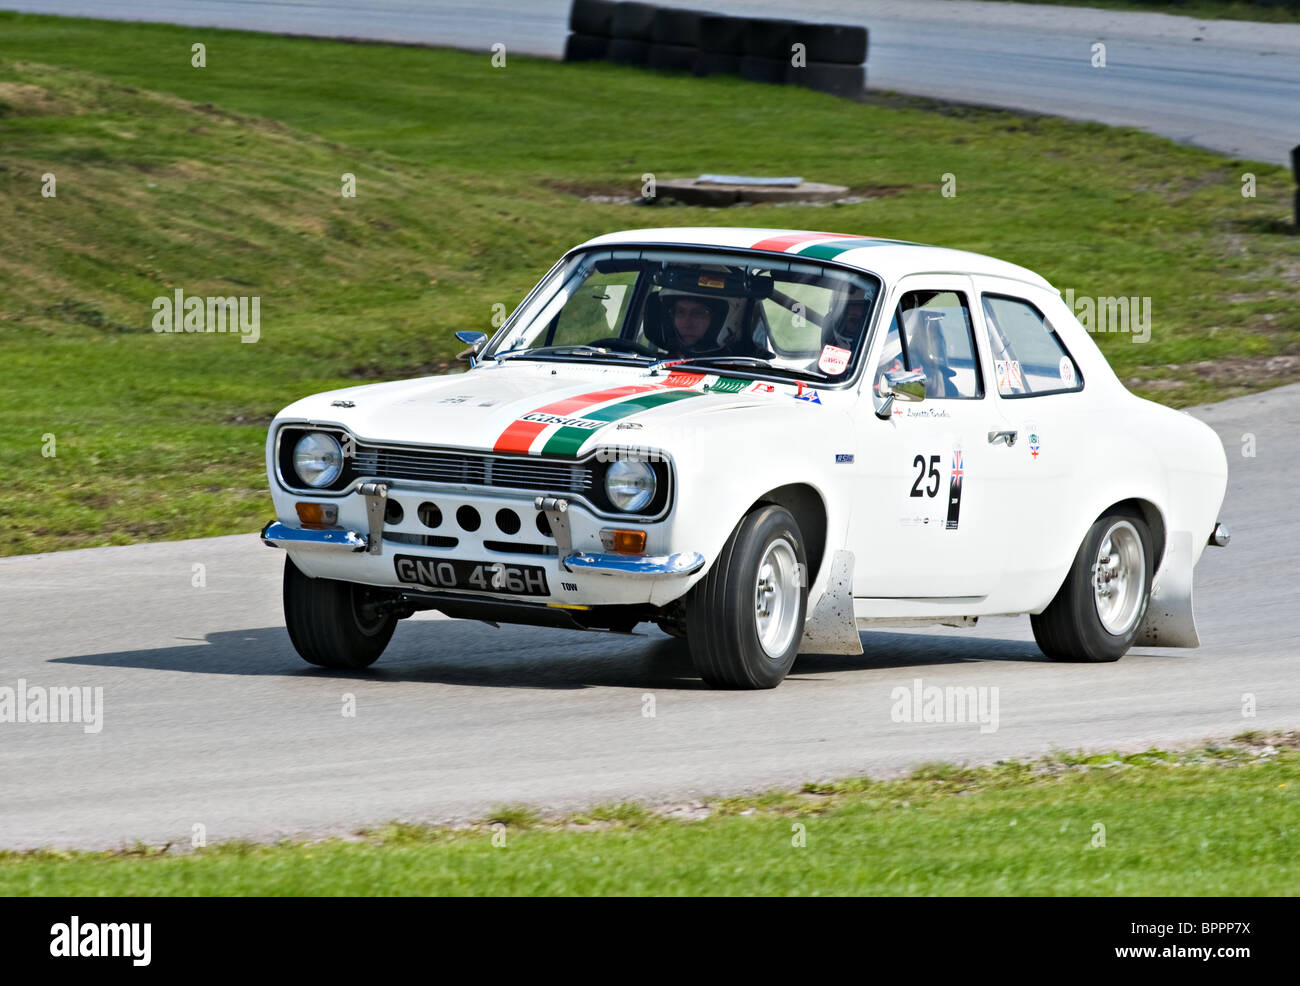 Mark I Ford Escort RS1600 Rally Car on Rally Track at Oulton Park ...